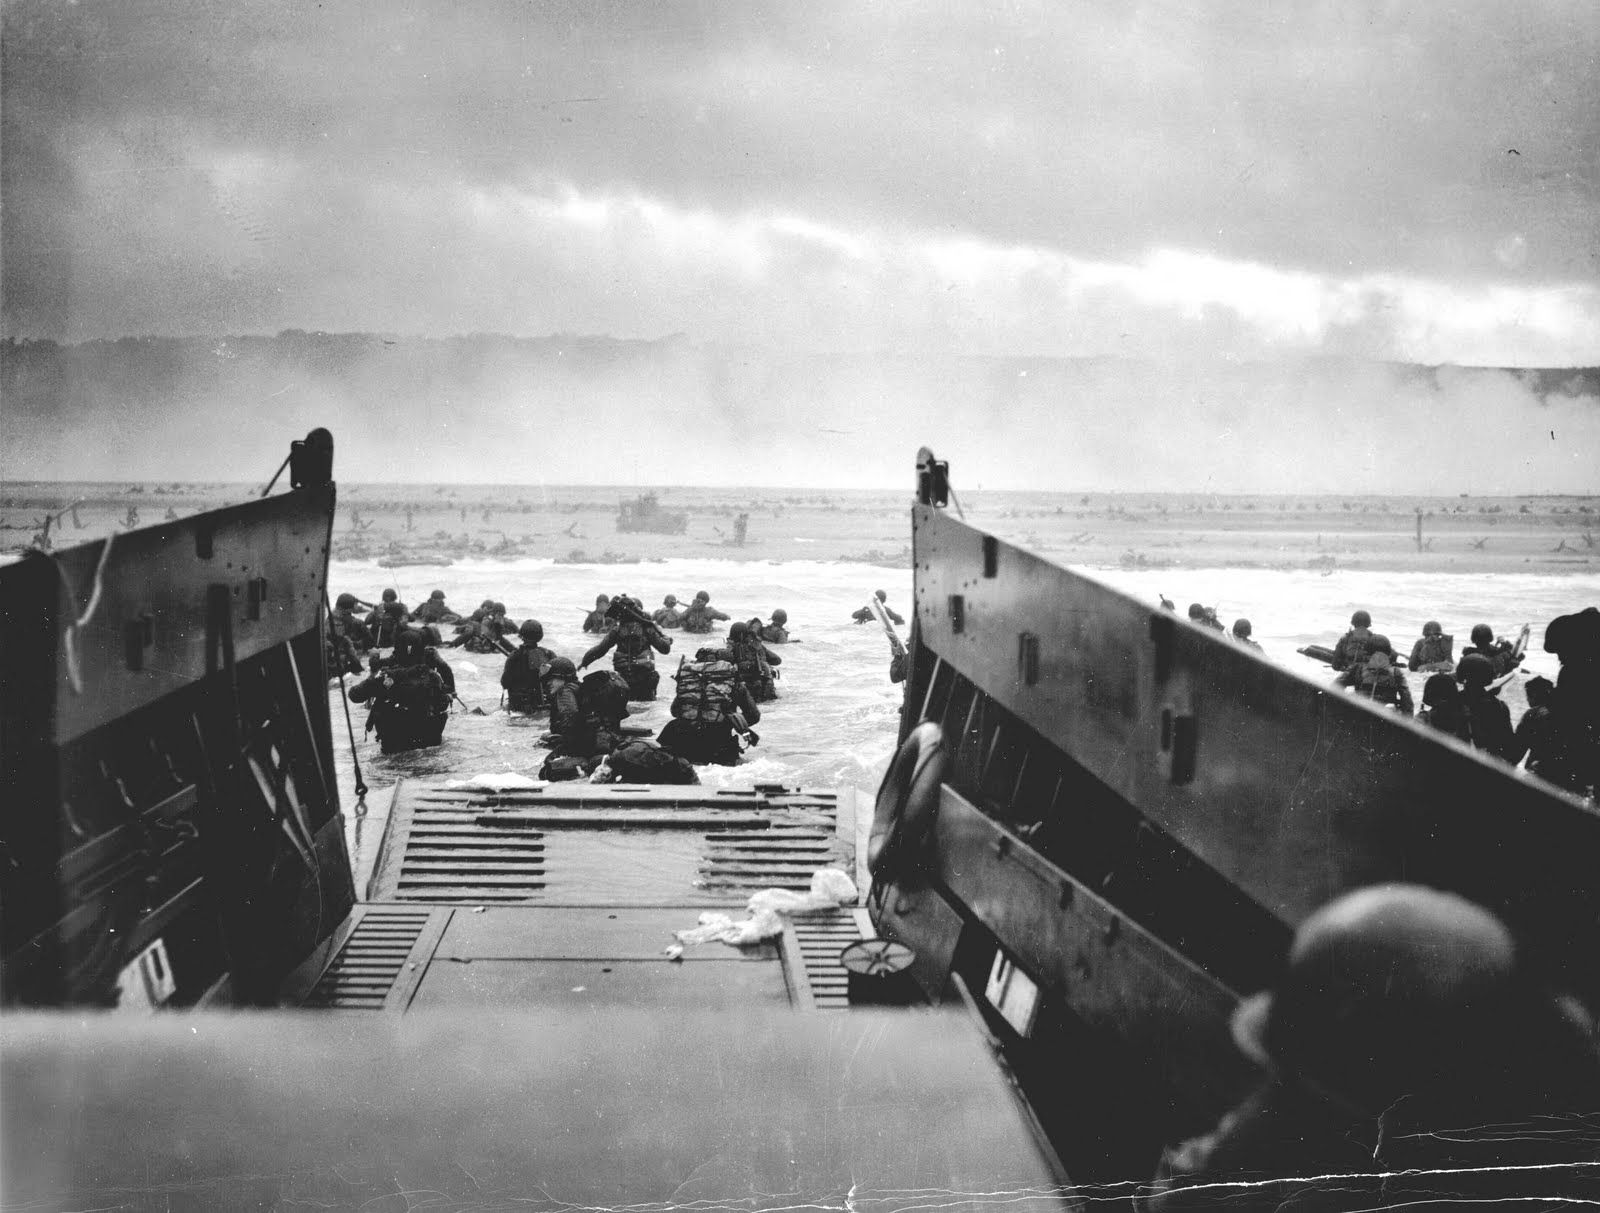 Day reenactment ww ii pictures pinterest - Wwii The D Day Landings U Troops Wade Ashore From A Coast Guard Landing Craft At Omaha Beach During The Normandy D Day Landings Near Vierville Sur Mer